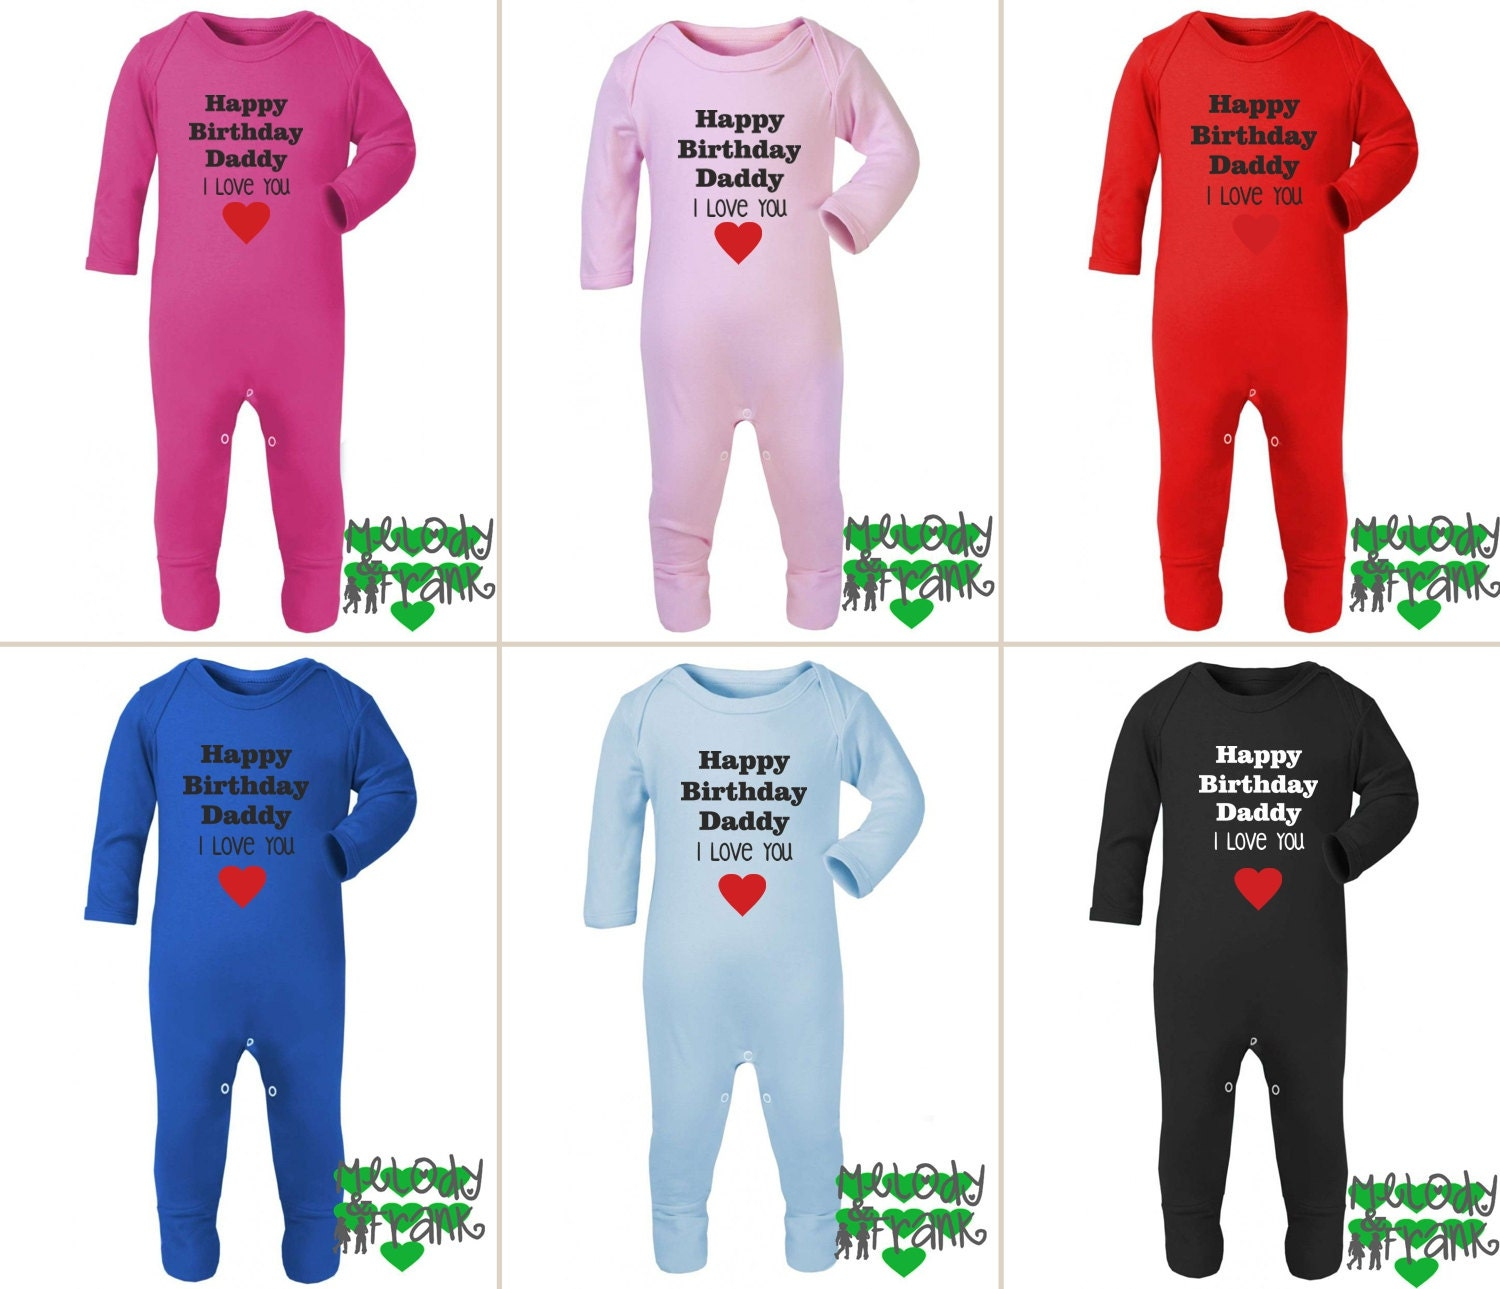 Happy Birthday Daddy I Love You Long Sleeve Sleepsuit Baby Romper